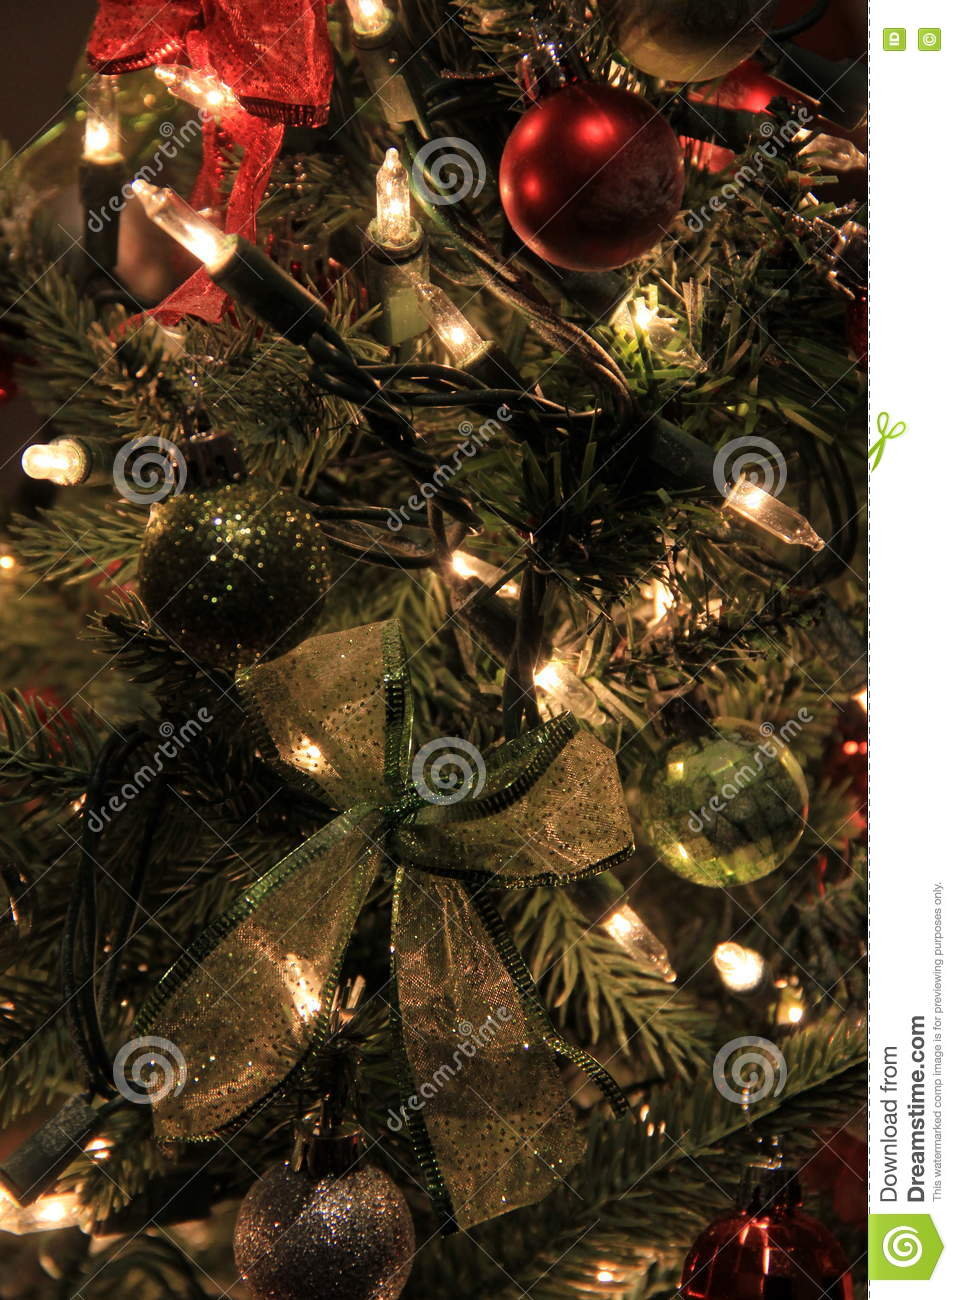 download colorful ornaments and blinking lights on christmas tree stock image image of flickering